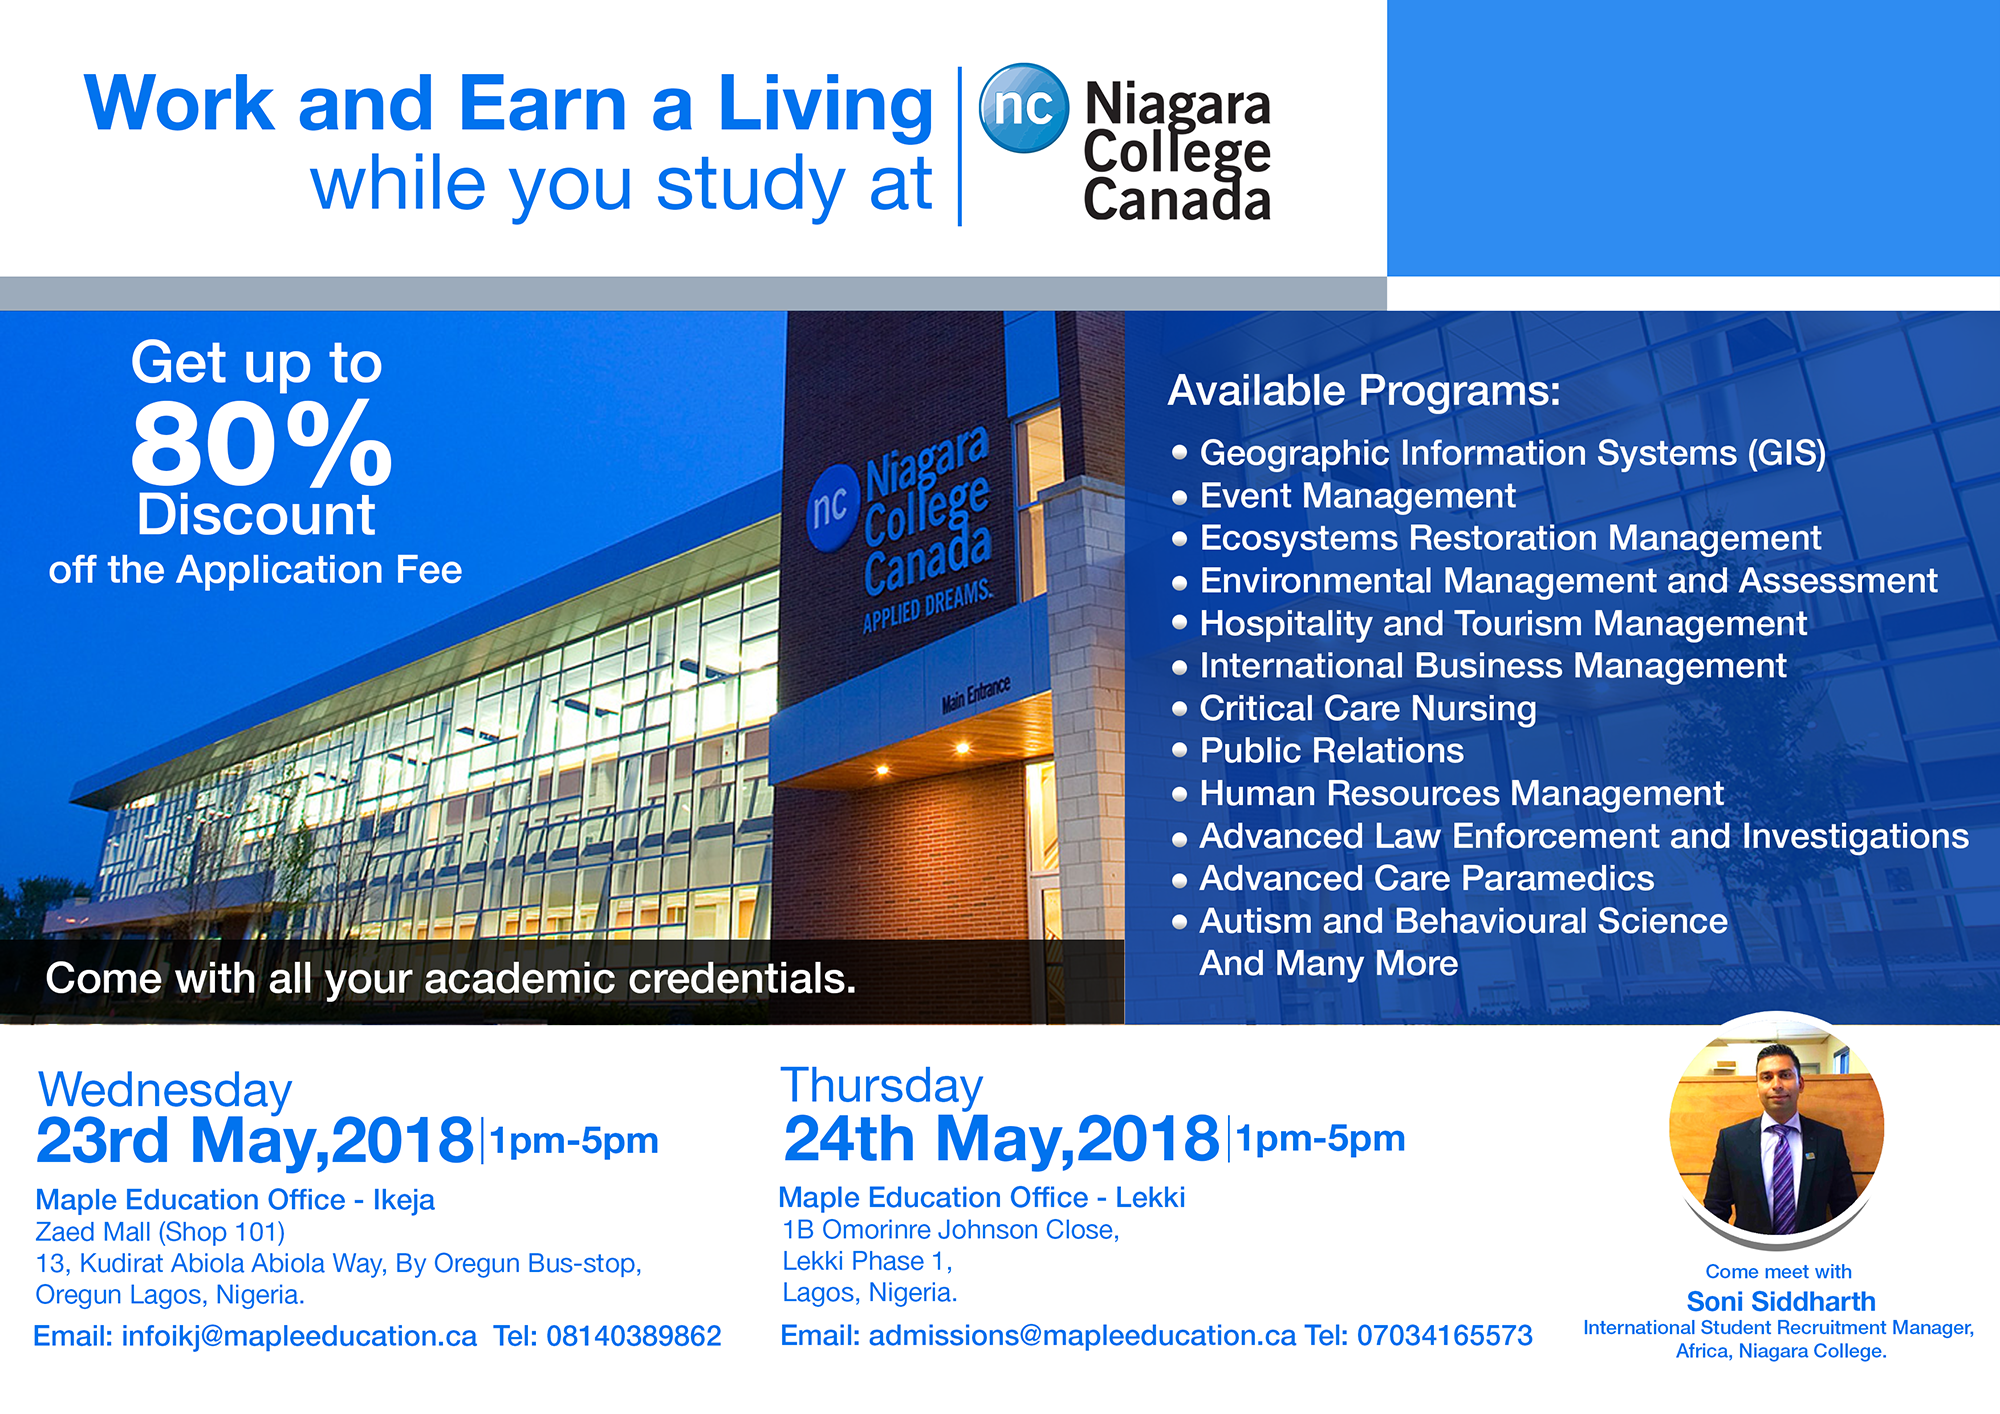 Work And Earn A Living While You Study At Niagara College Canada